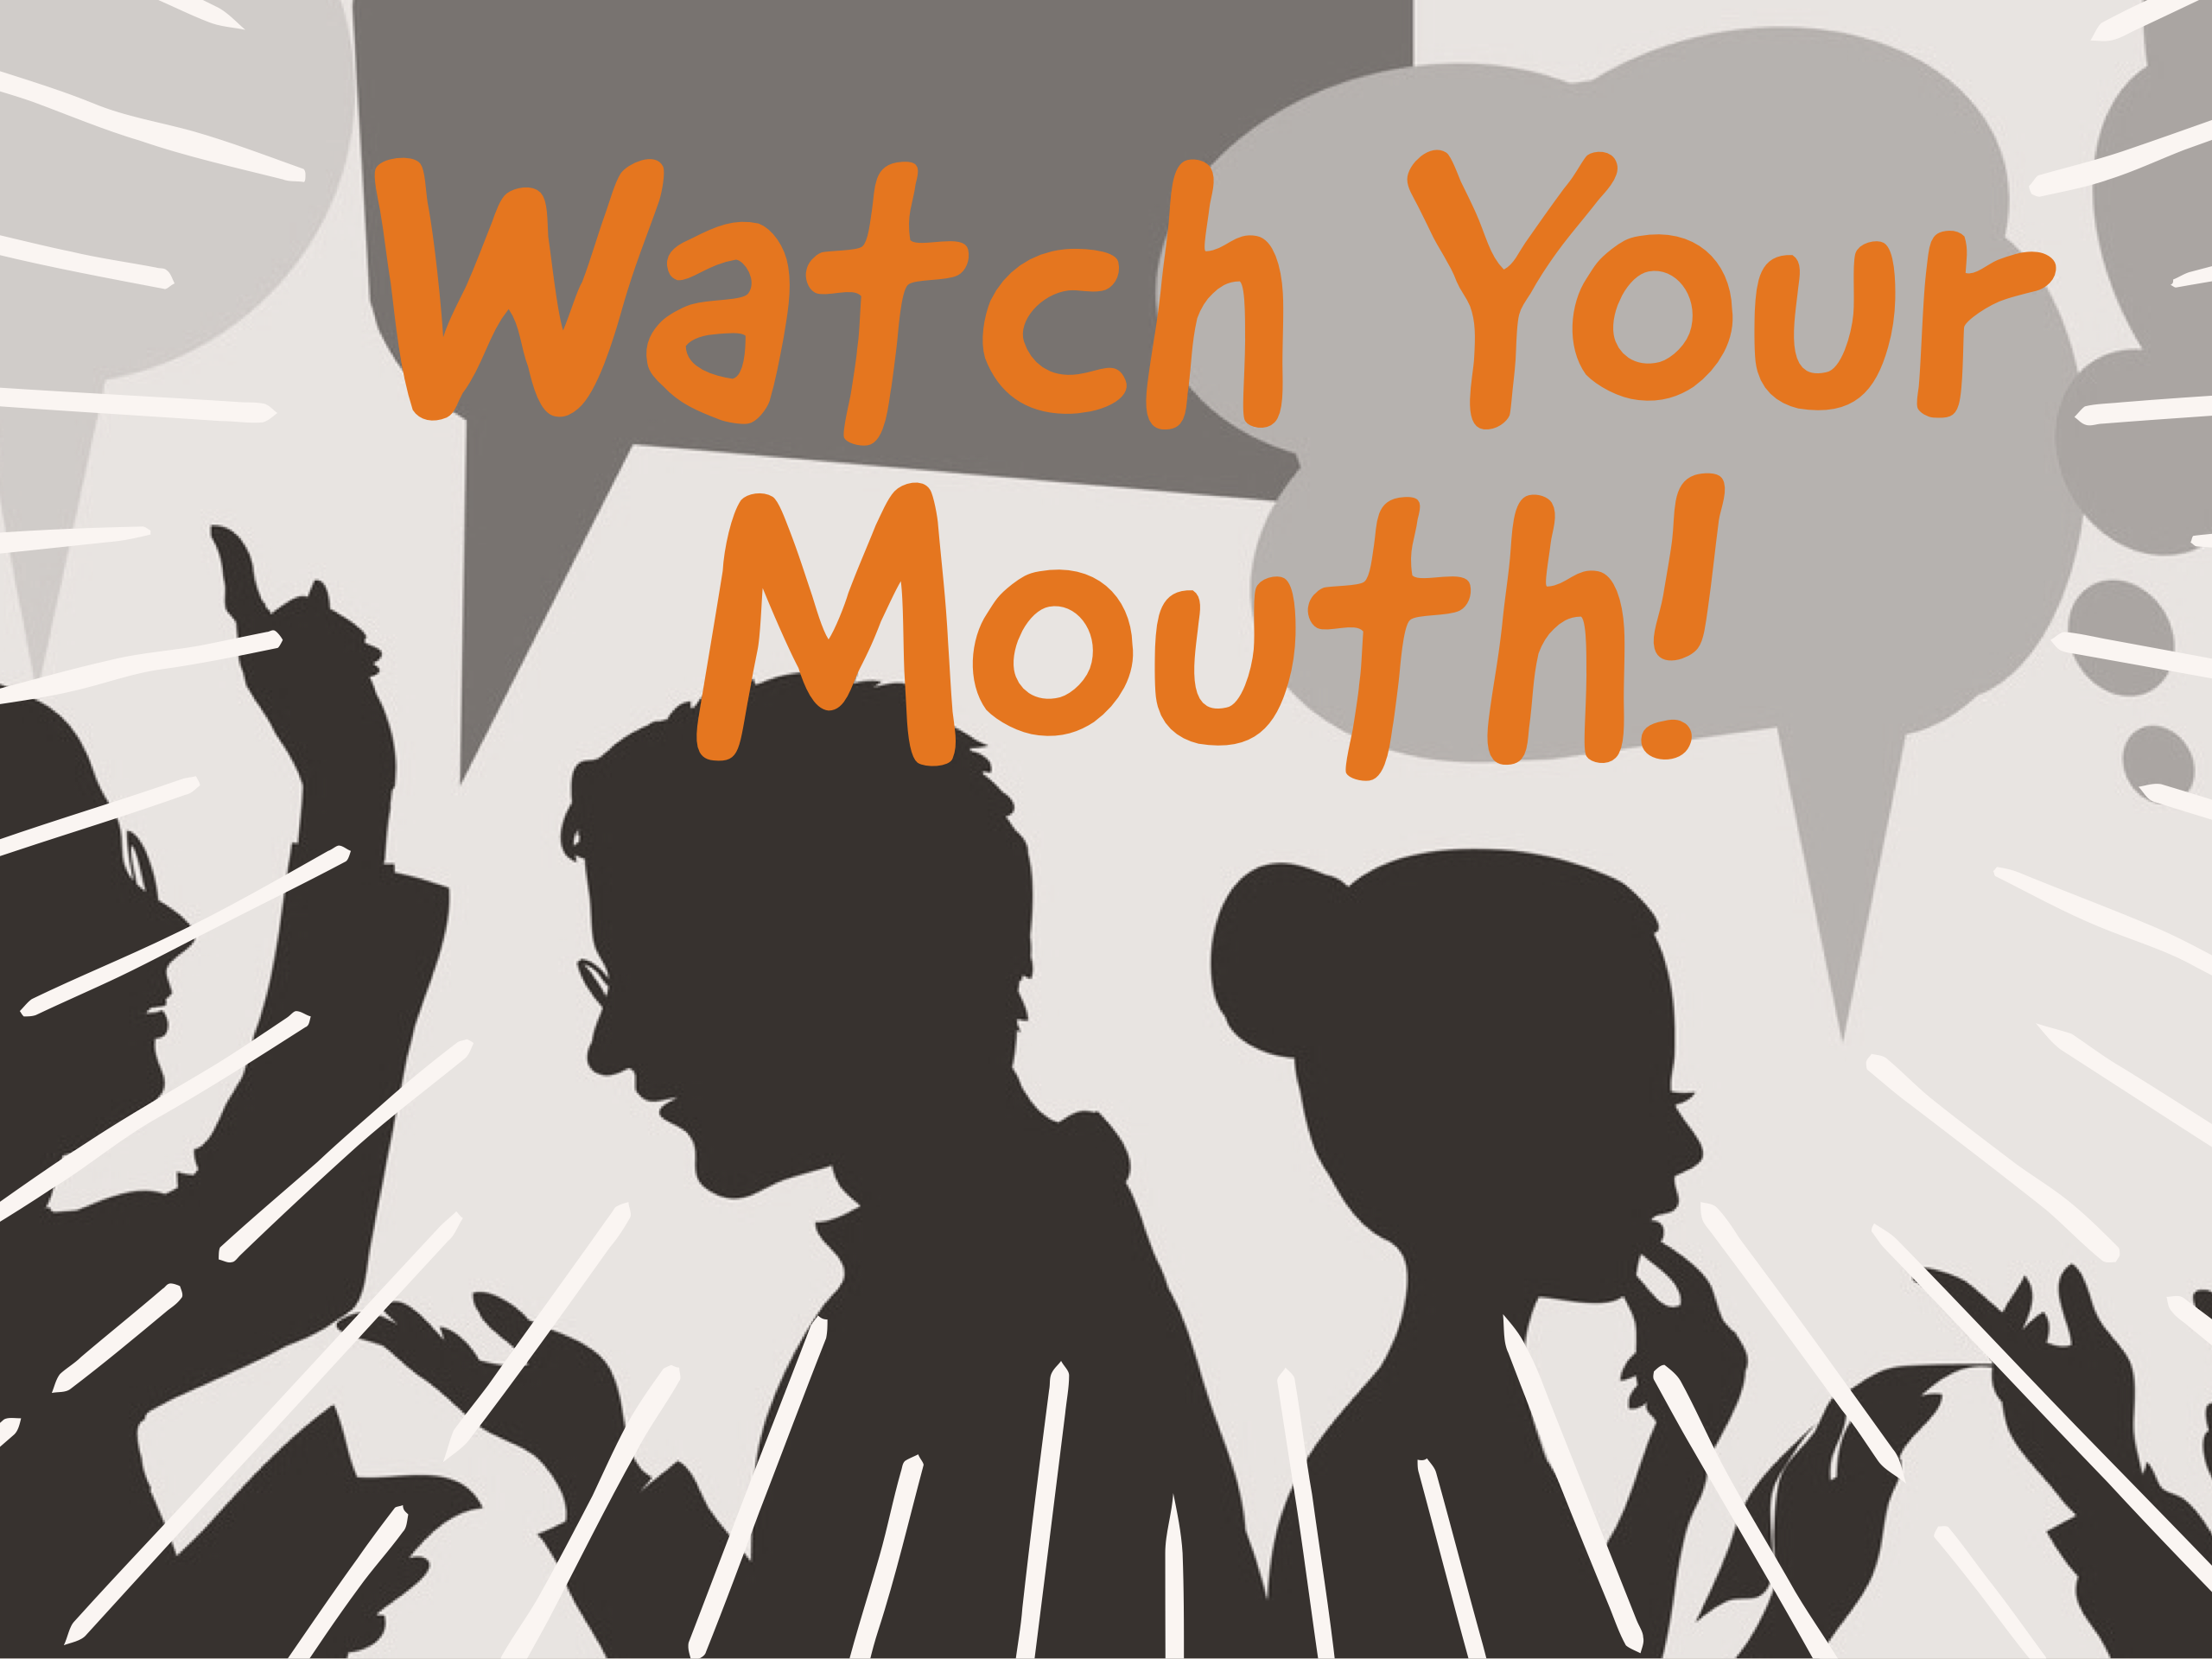 Watch Your Mouth - September 2018 Sermon Series - Broad